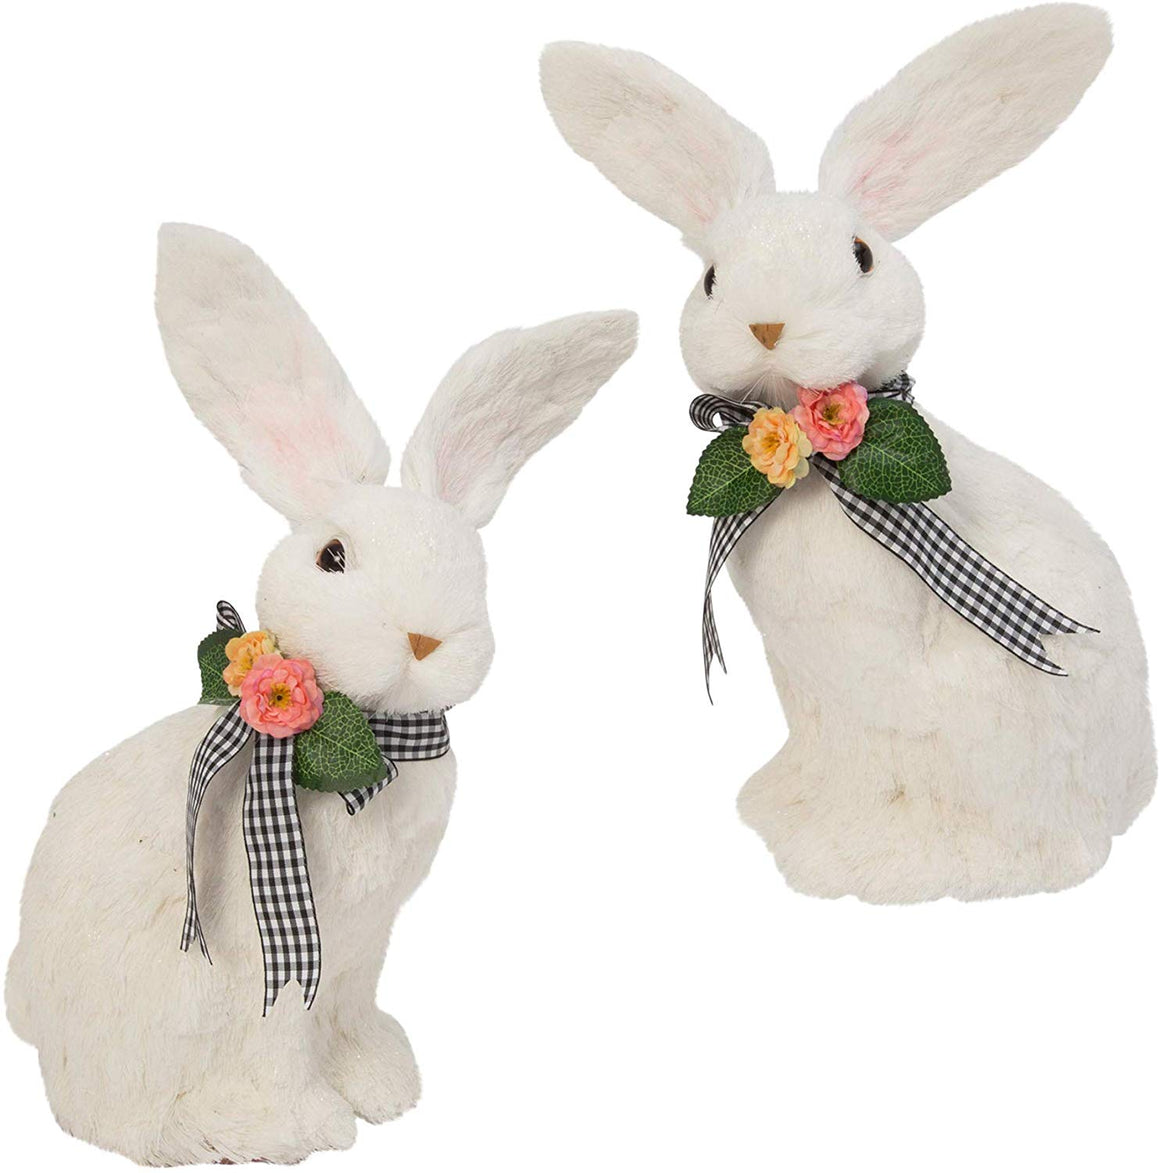 GER Set of 2 White Handcrafted Easter Rabbits, 12.5 Inches High, Easter Bunnies with Black and White Bow Accents